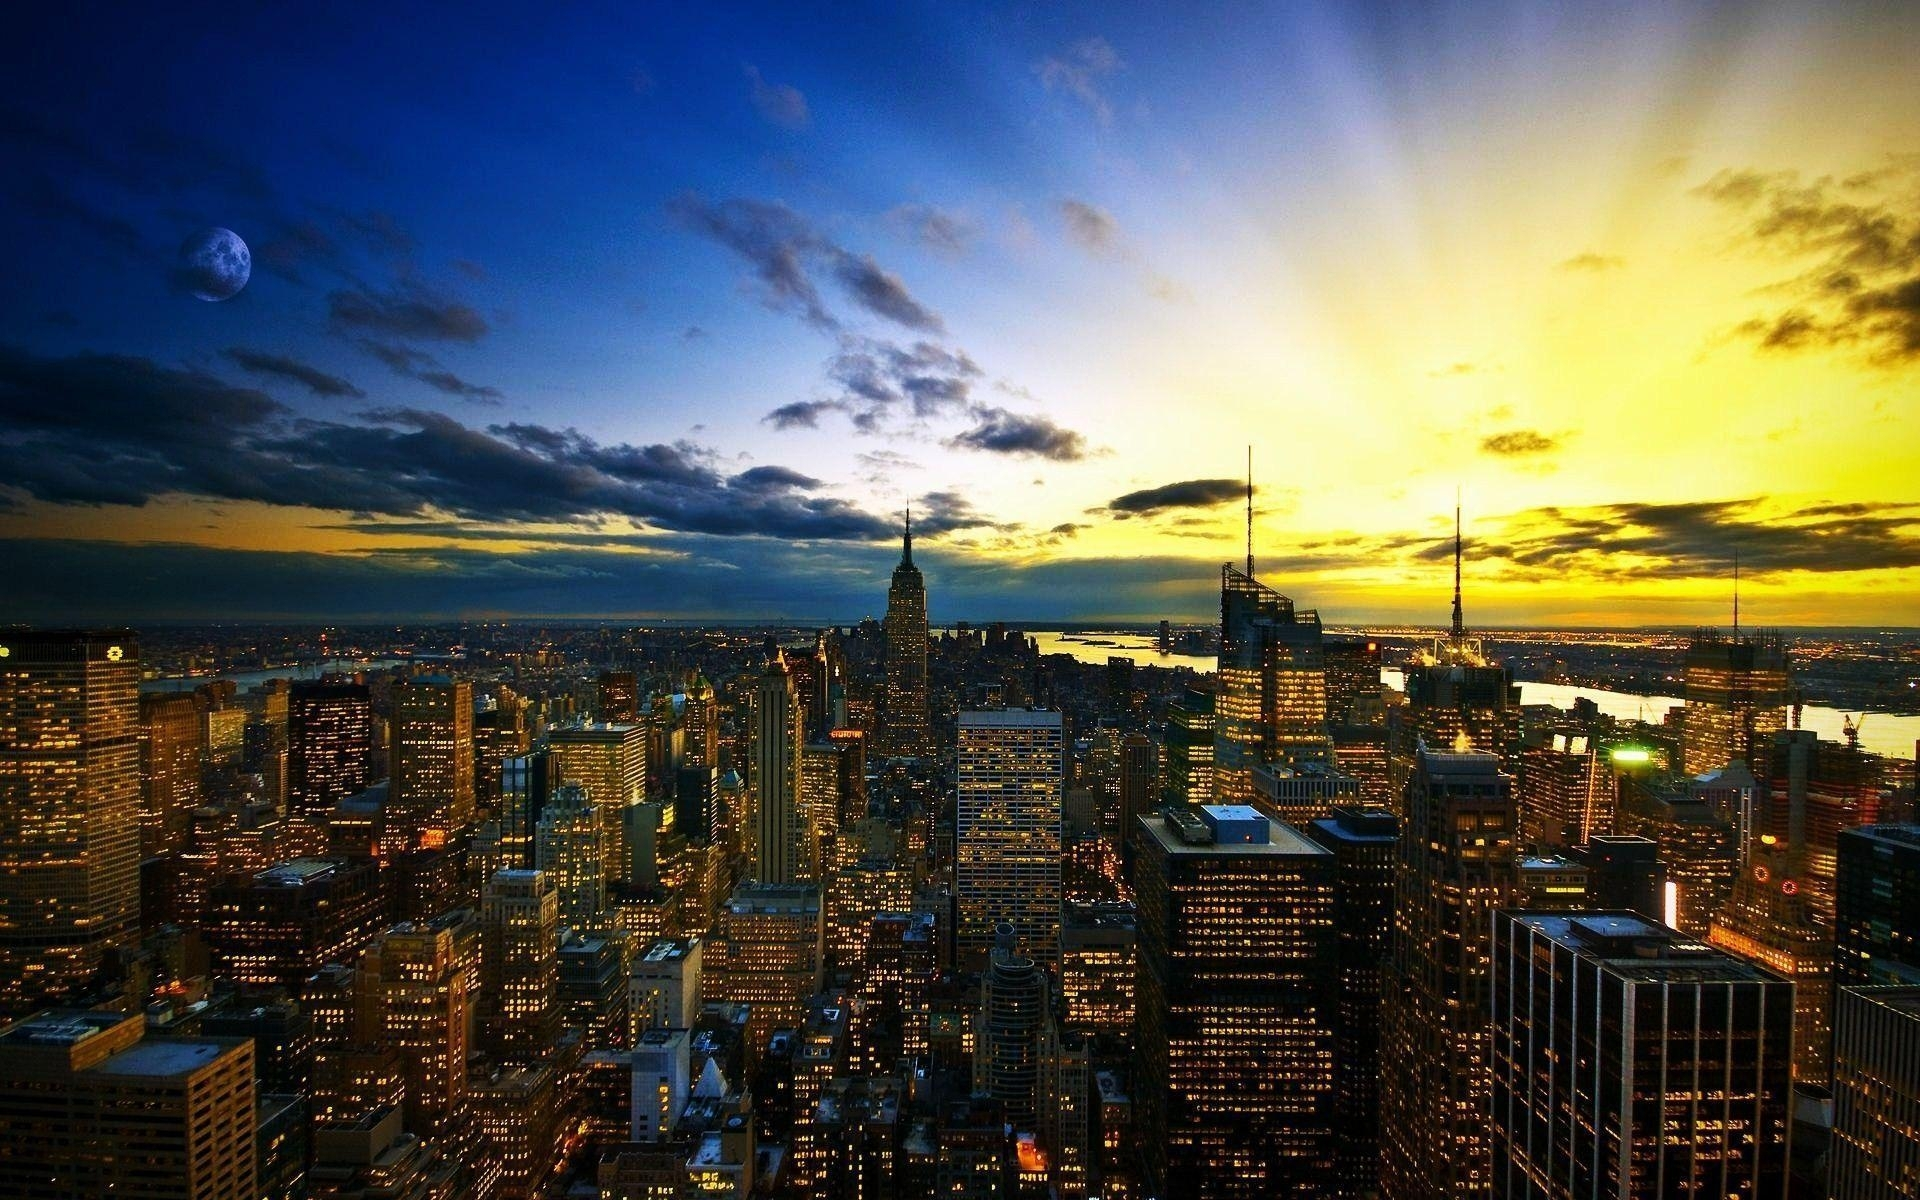 10 Latest City Skyline Desktop Wallpaper FULL HD 1920×1080 For PC Desktop